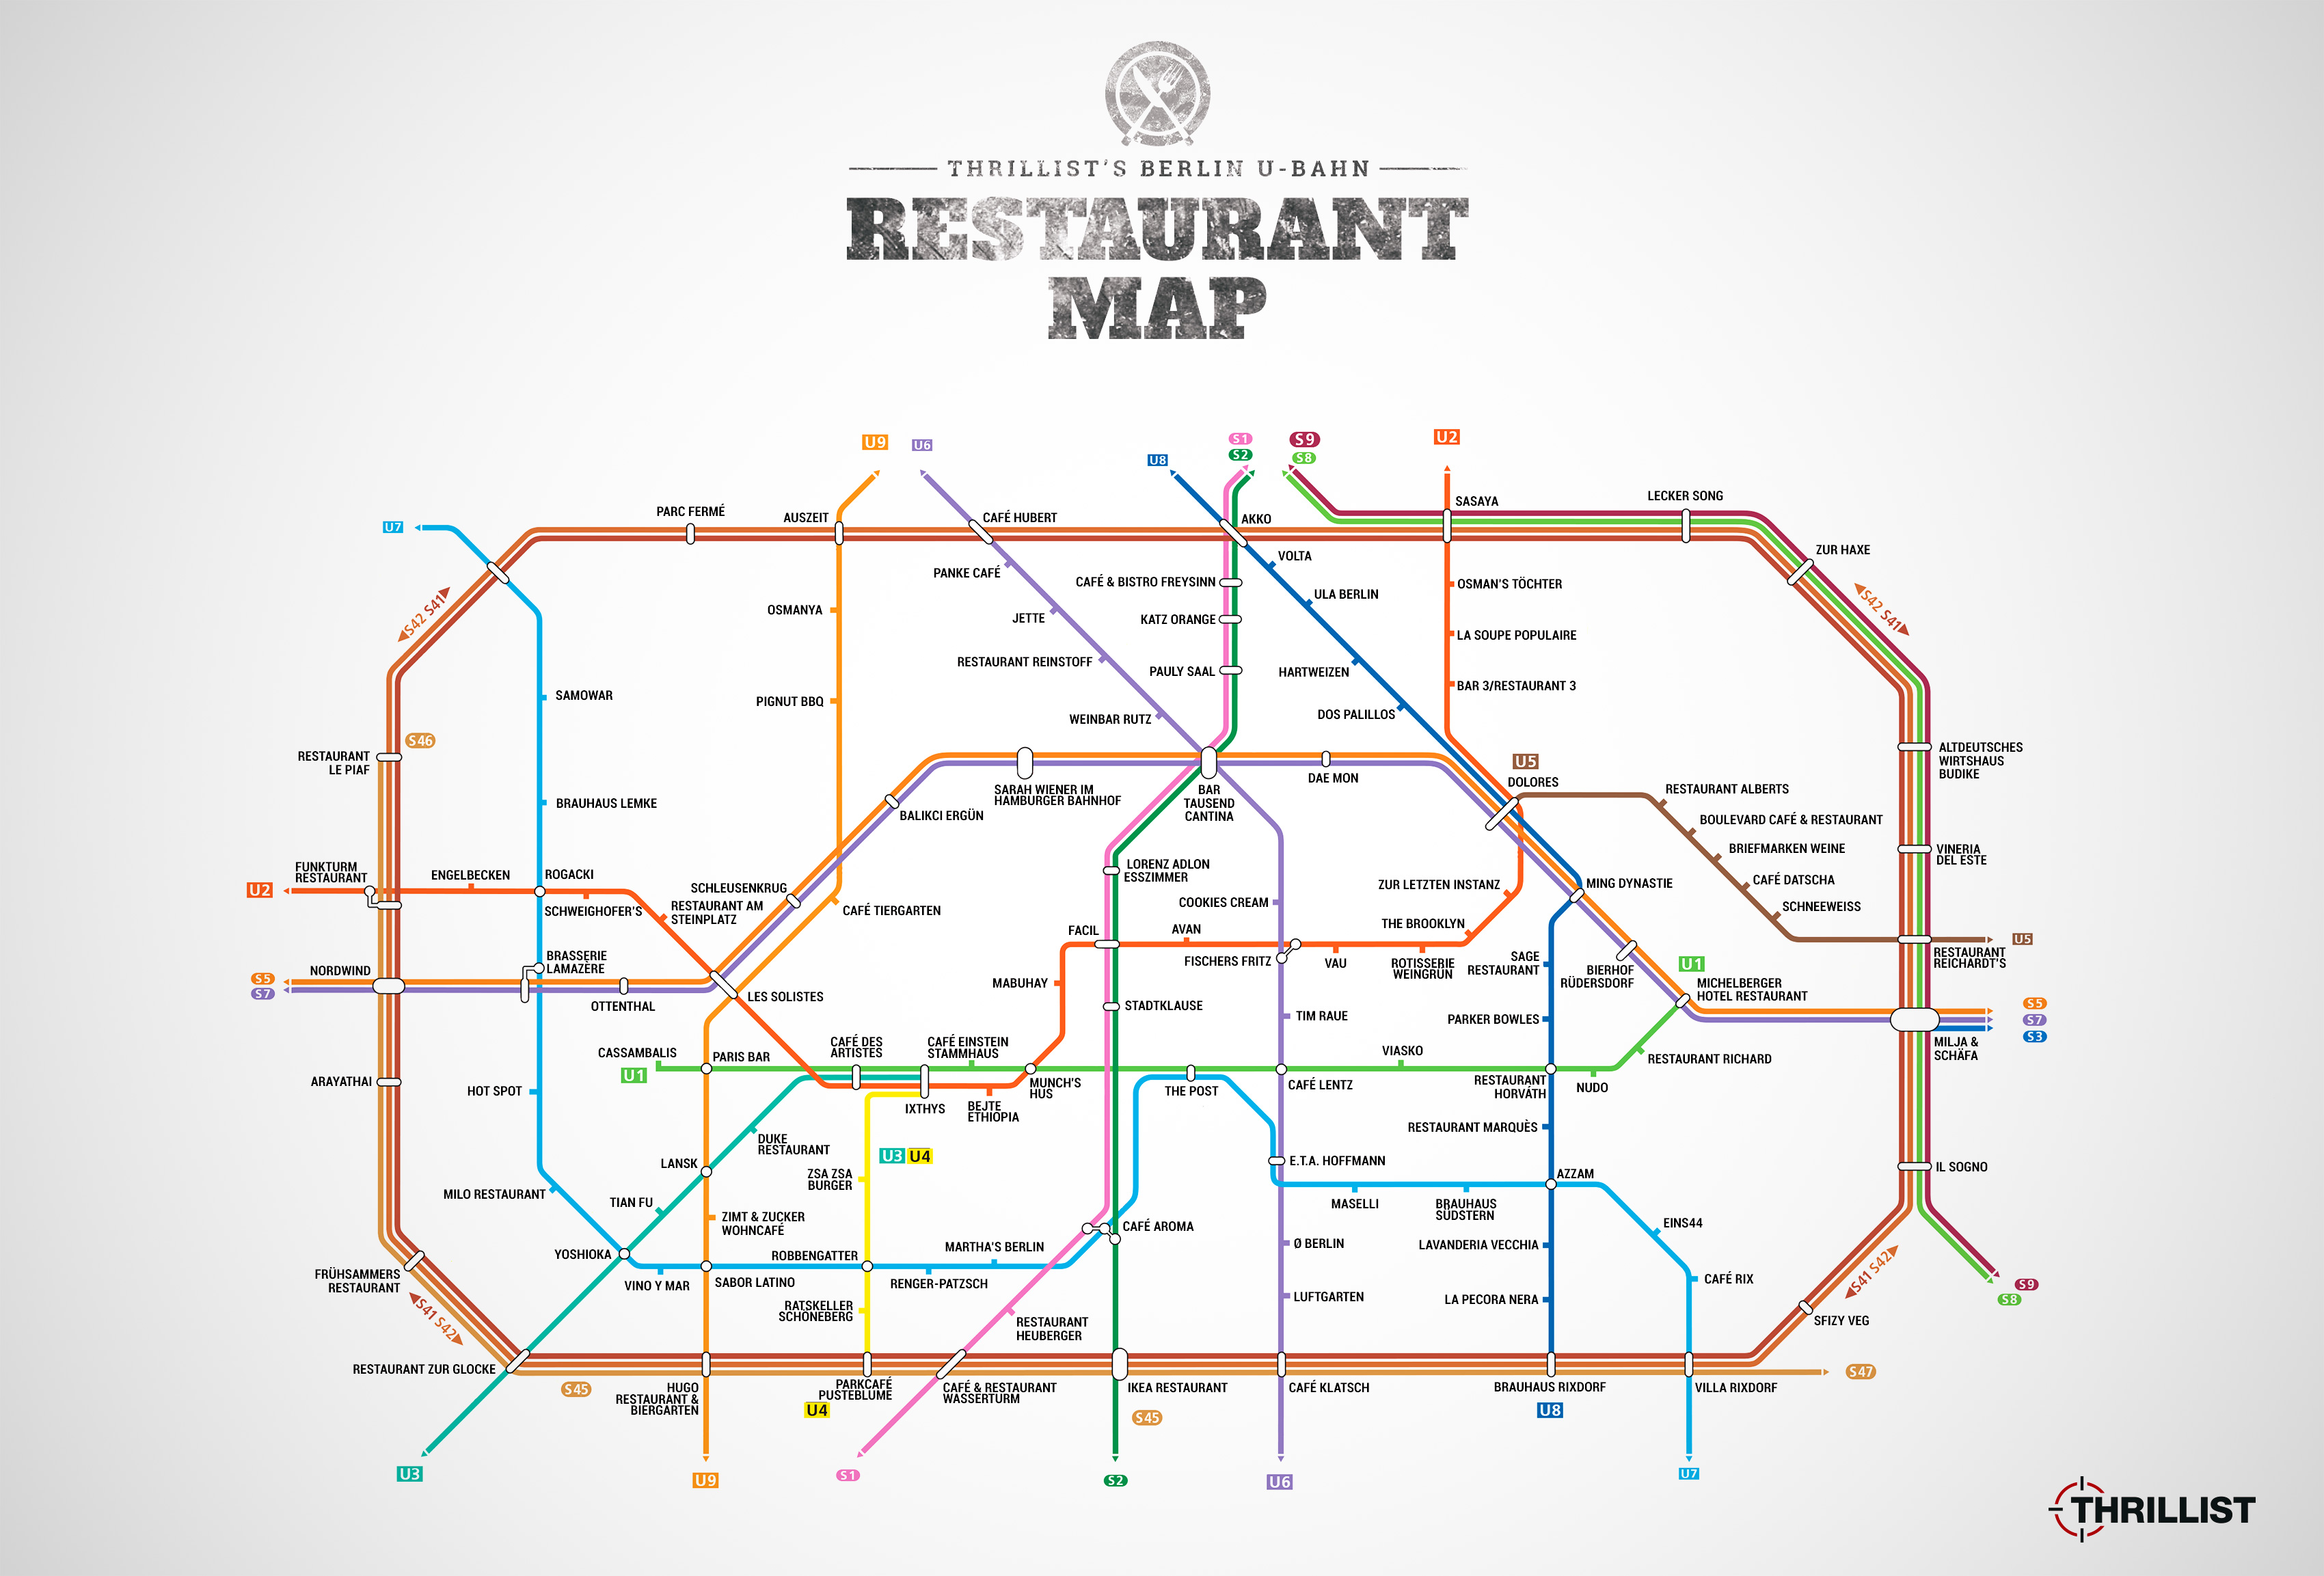 Berlin UBahn Restaurant Map Berlin Restaurants Near Stations - Berlin us bahn map